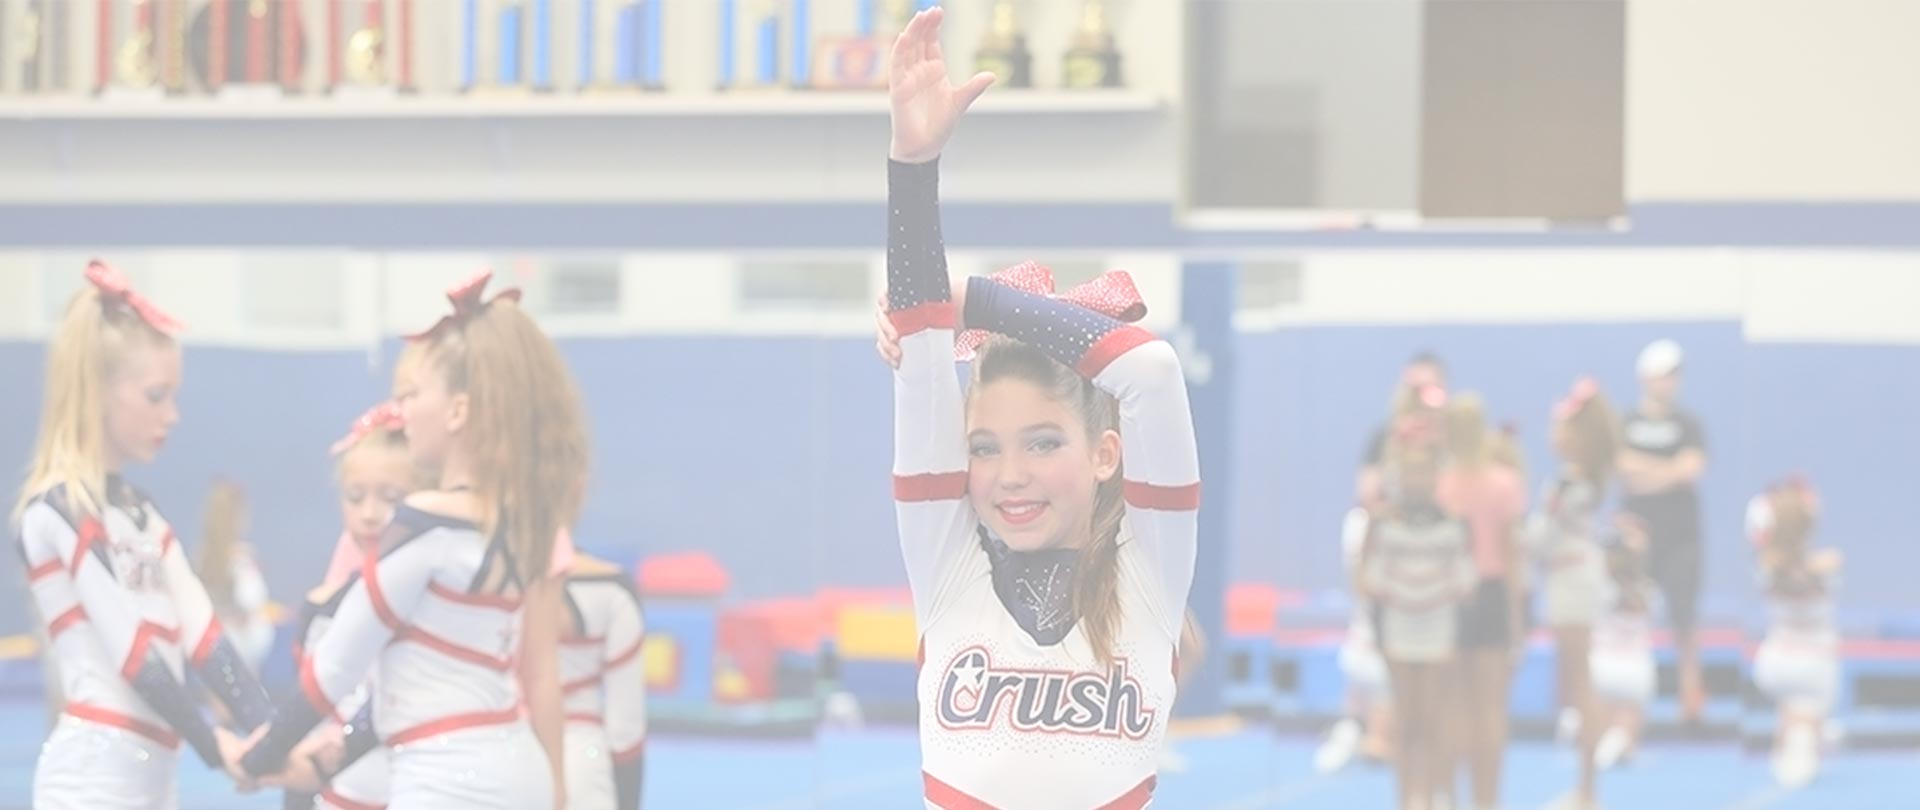 Crush Cheer Confidence